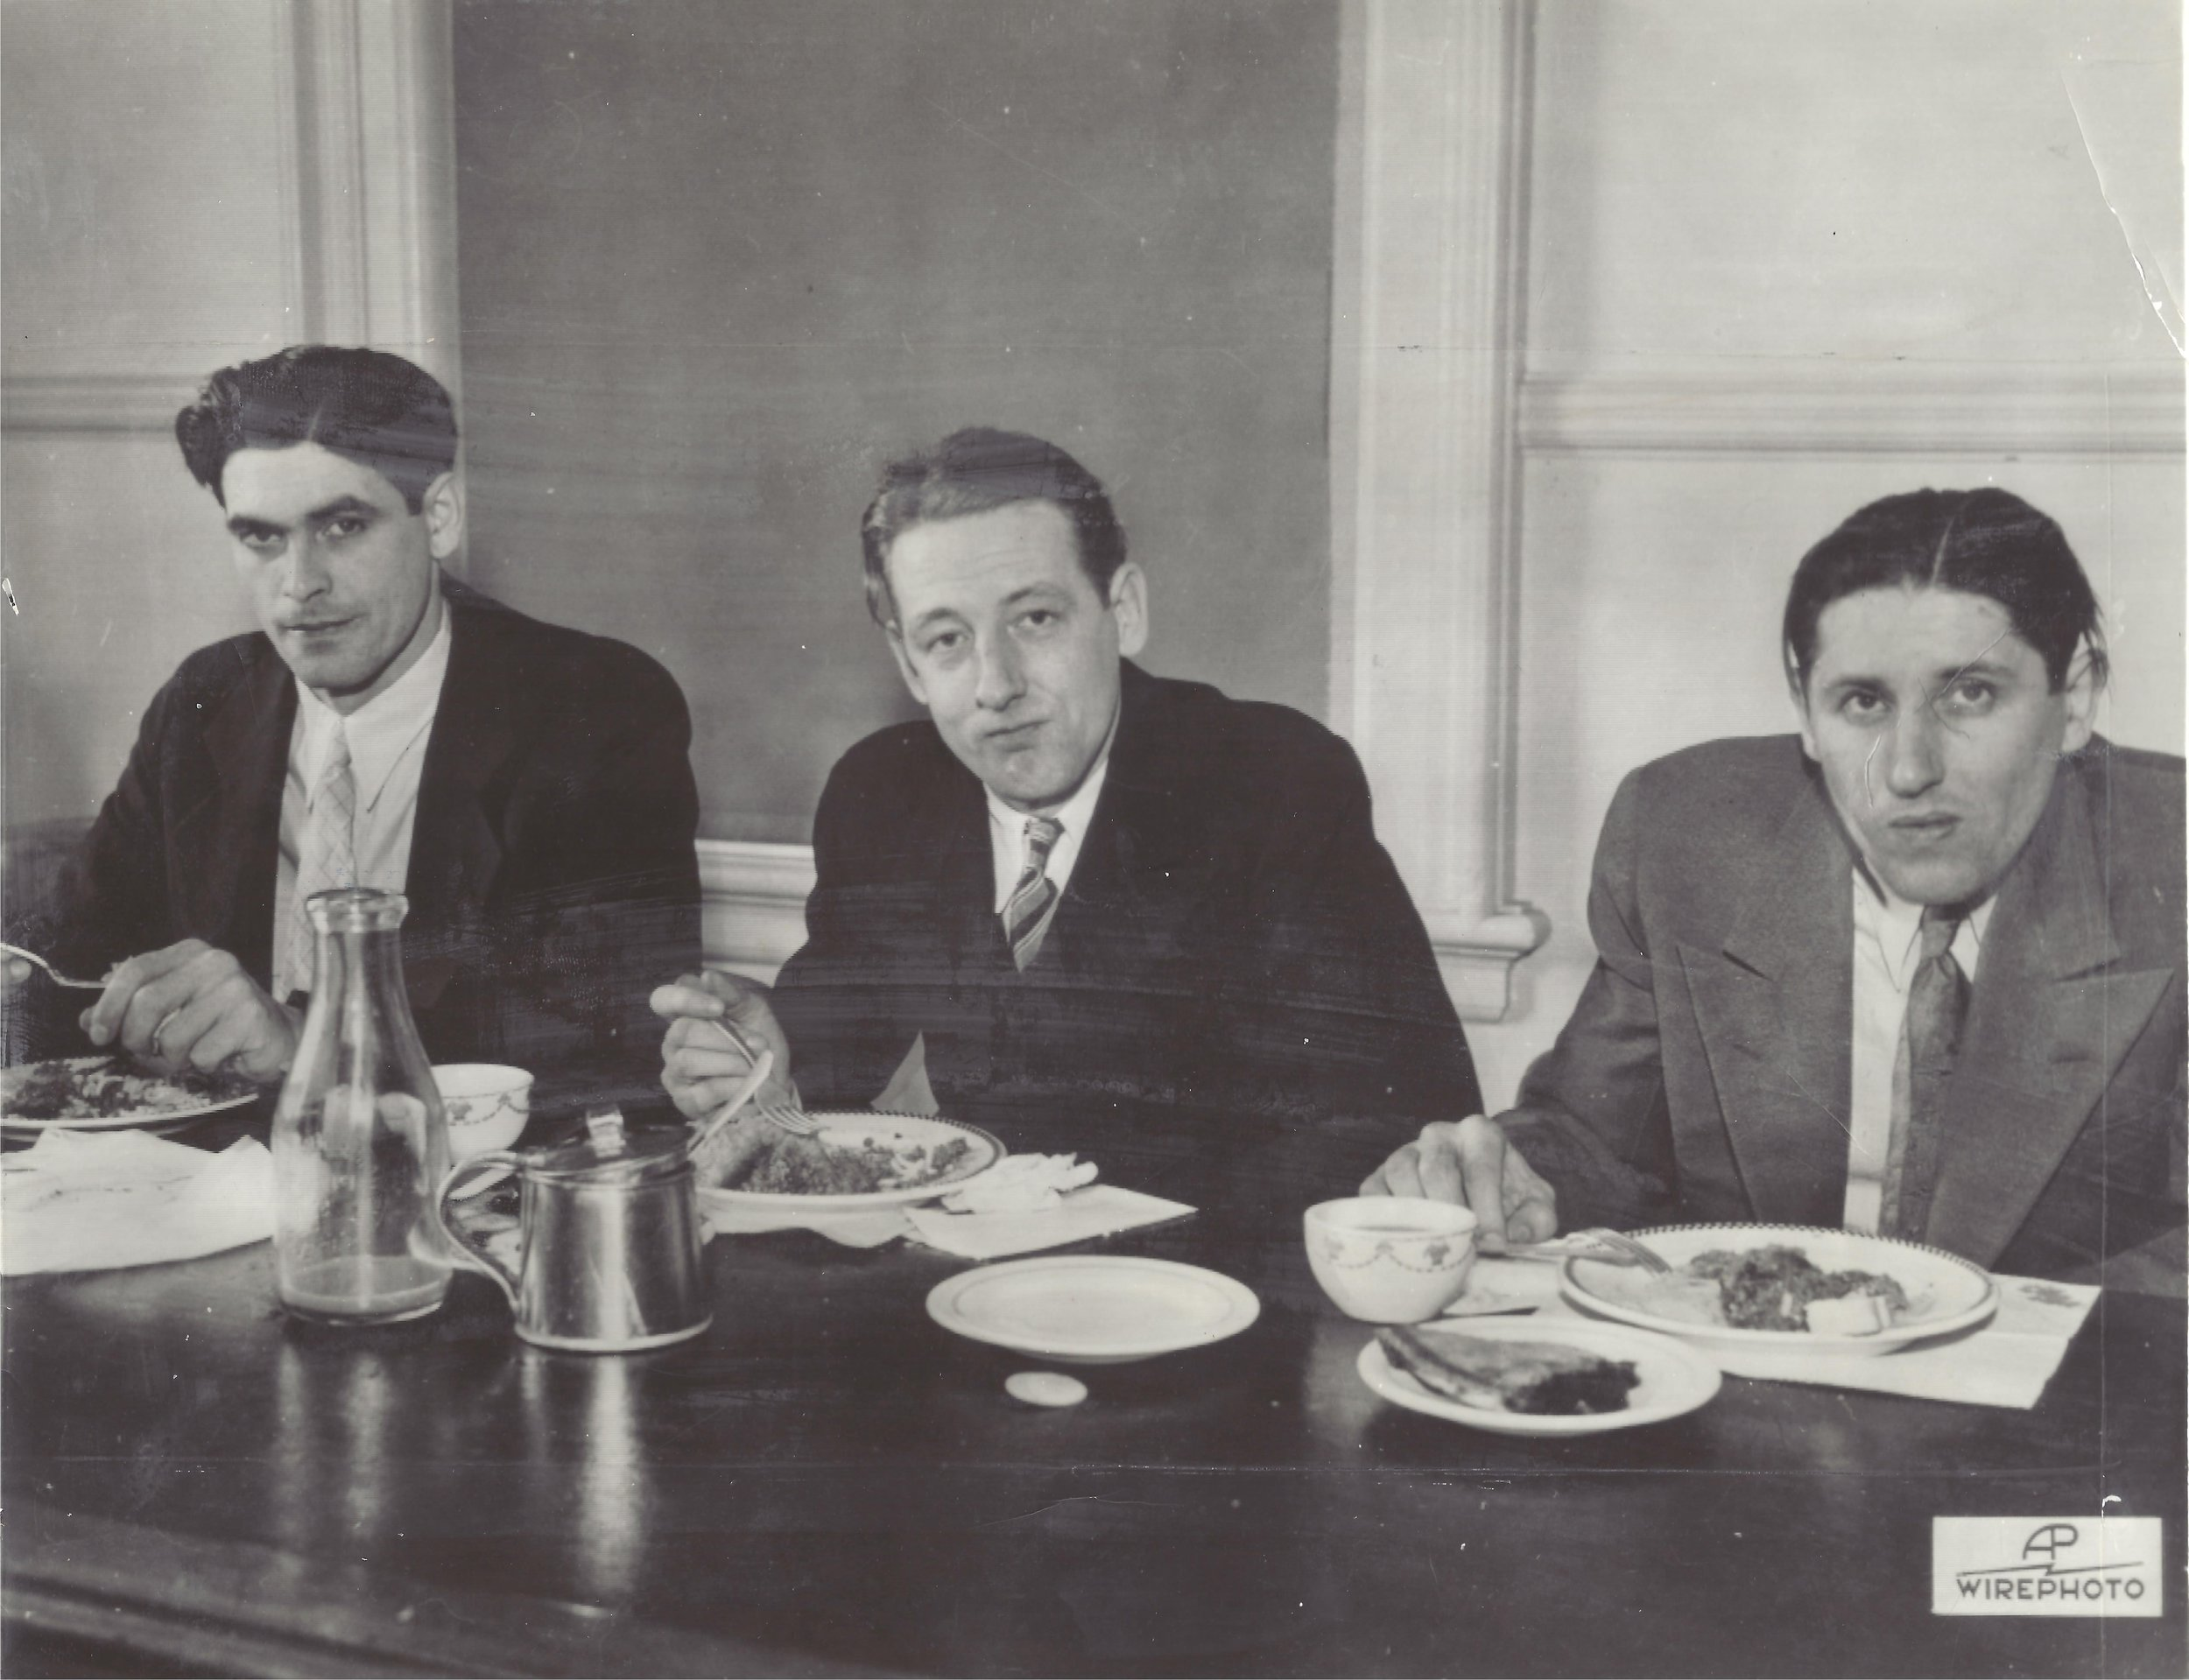 The second photo shows (left to right) convicts Alex McKay, Joe Kristy and Fred Launders eating lunch during a break in their trial.  Landers plead guilty during the trial and the other two were tried under the Lindberg law as they kidnapped a prison guard.